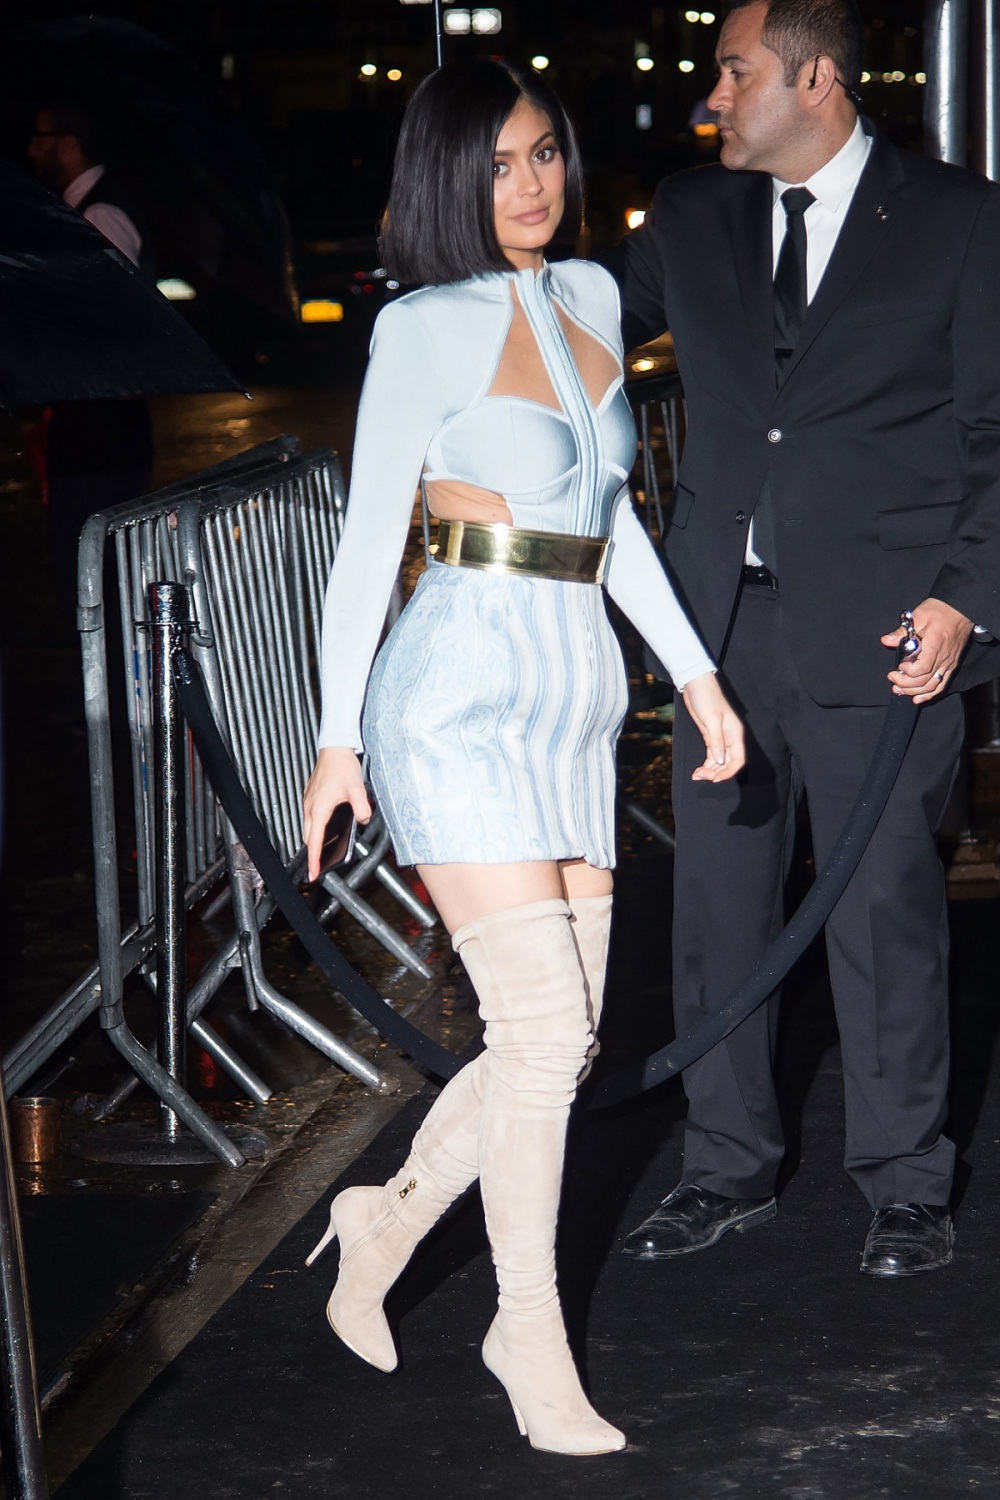 Kylie Jenner Arriving at the Costume Institute Gala Balmain After Party at Gilded Lily in New York City